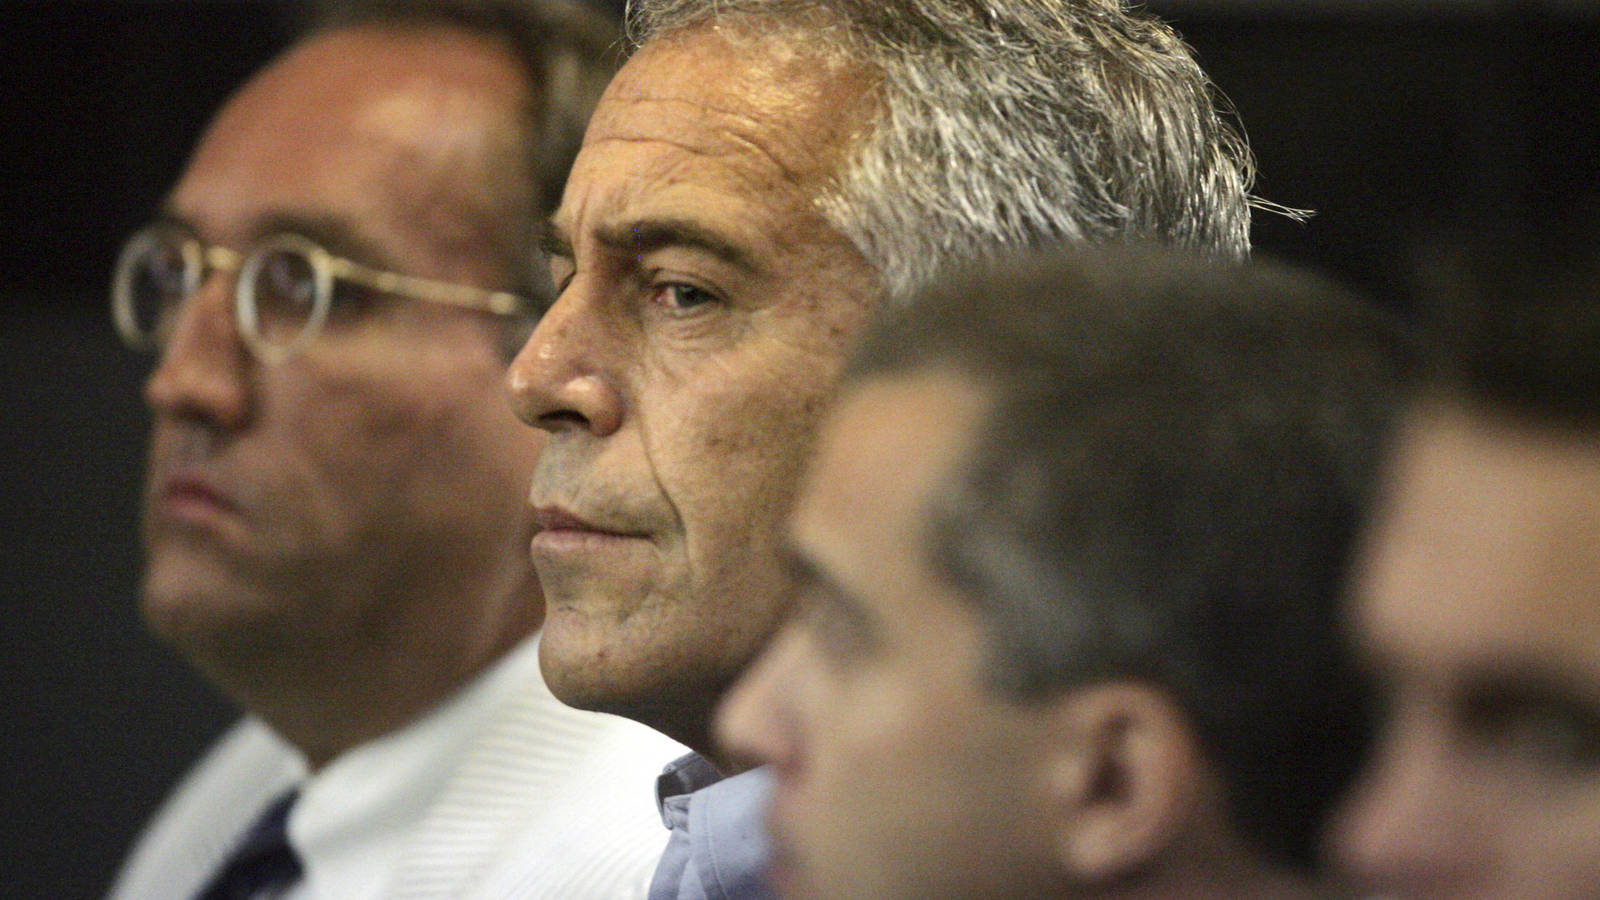 Jeffrey Epstein's autopsy more consistent with homicidal strangulation than suicide